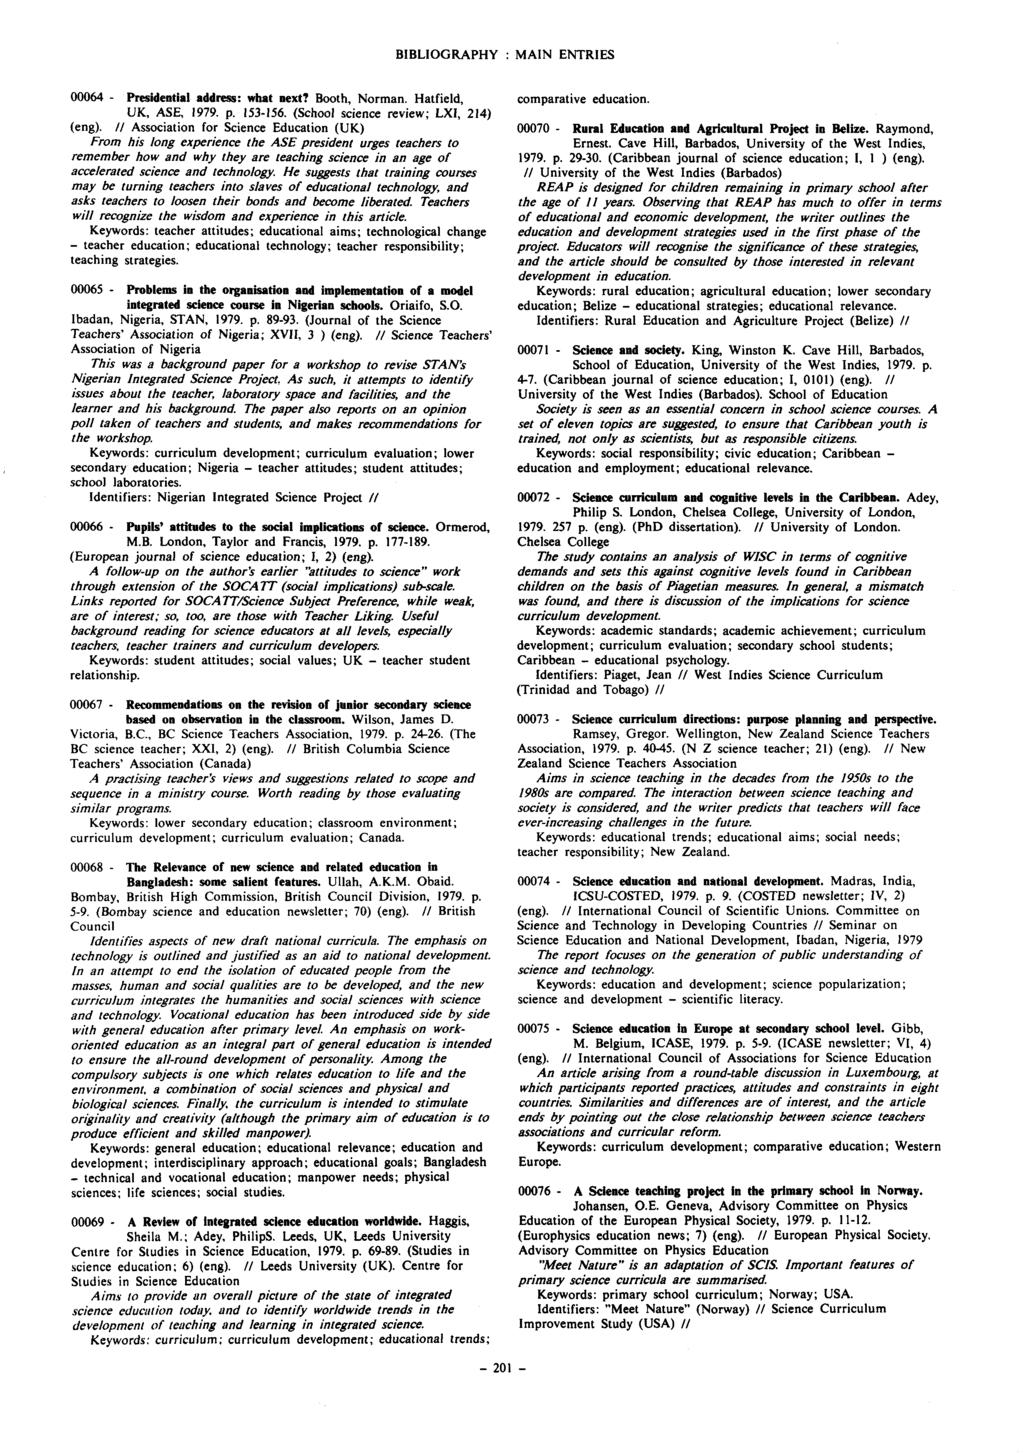 BIBLIOGRAPHY : MAIN ENTRIES 00064 - Presidential address: What next? Booth, Norman. Hatfield, UK, ASE, 1979. p. 153-156. (School science review; LXI, 214) (eng).